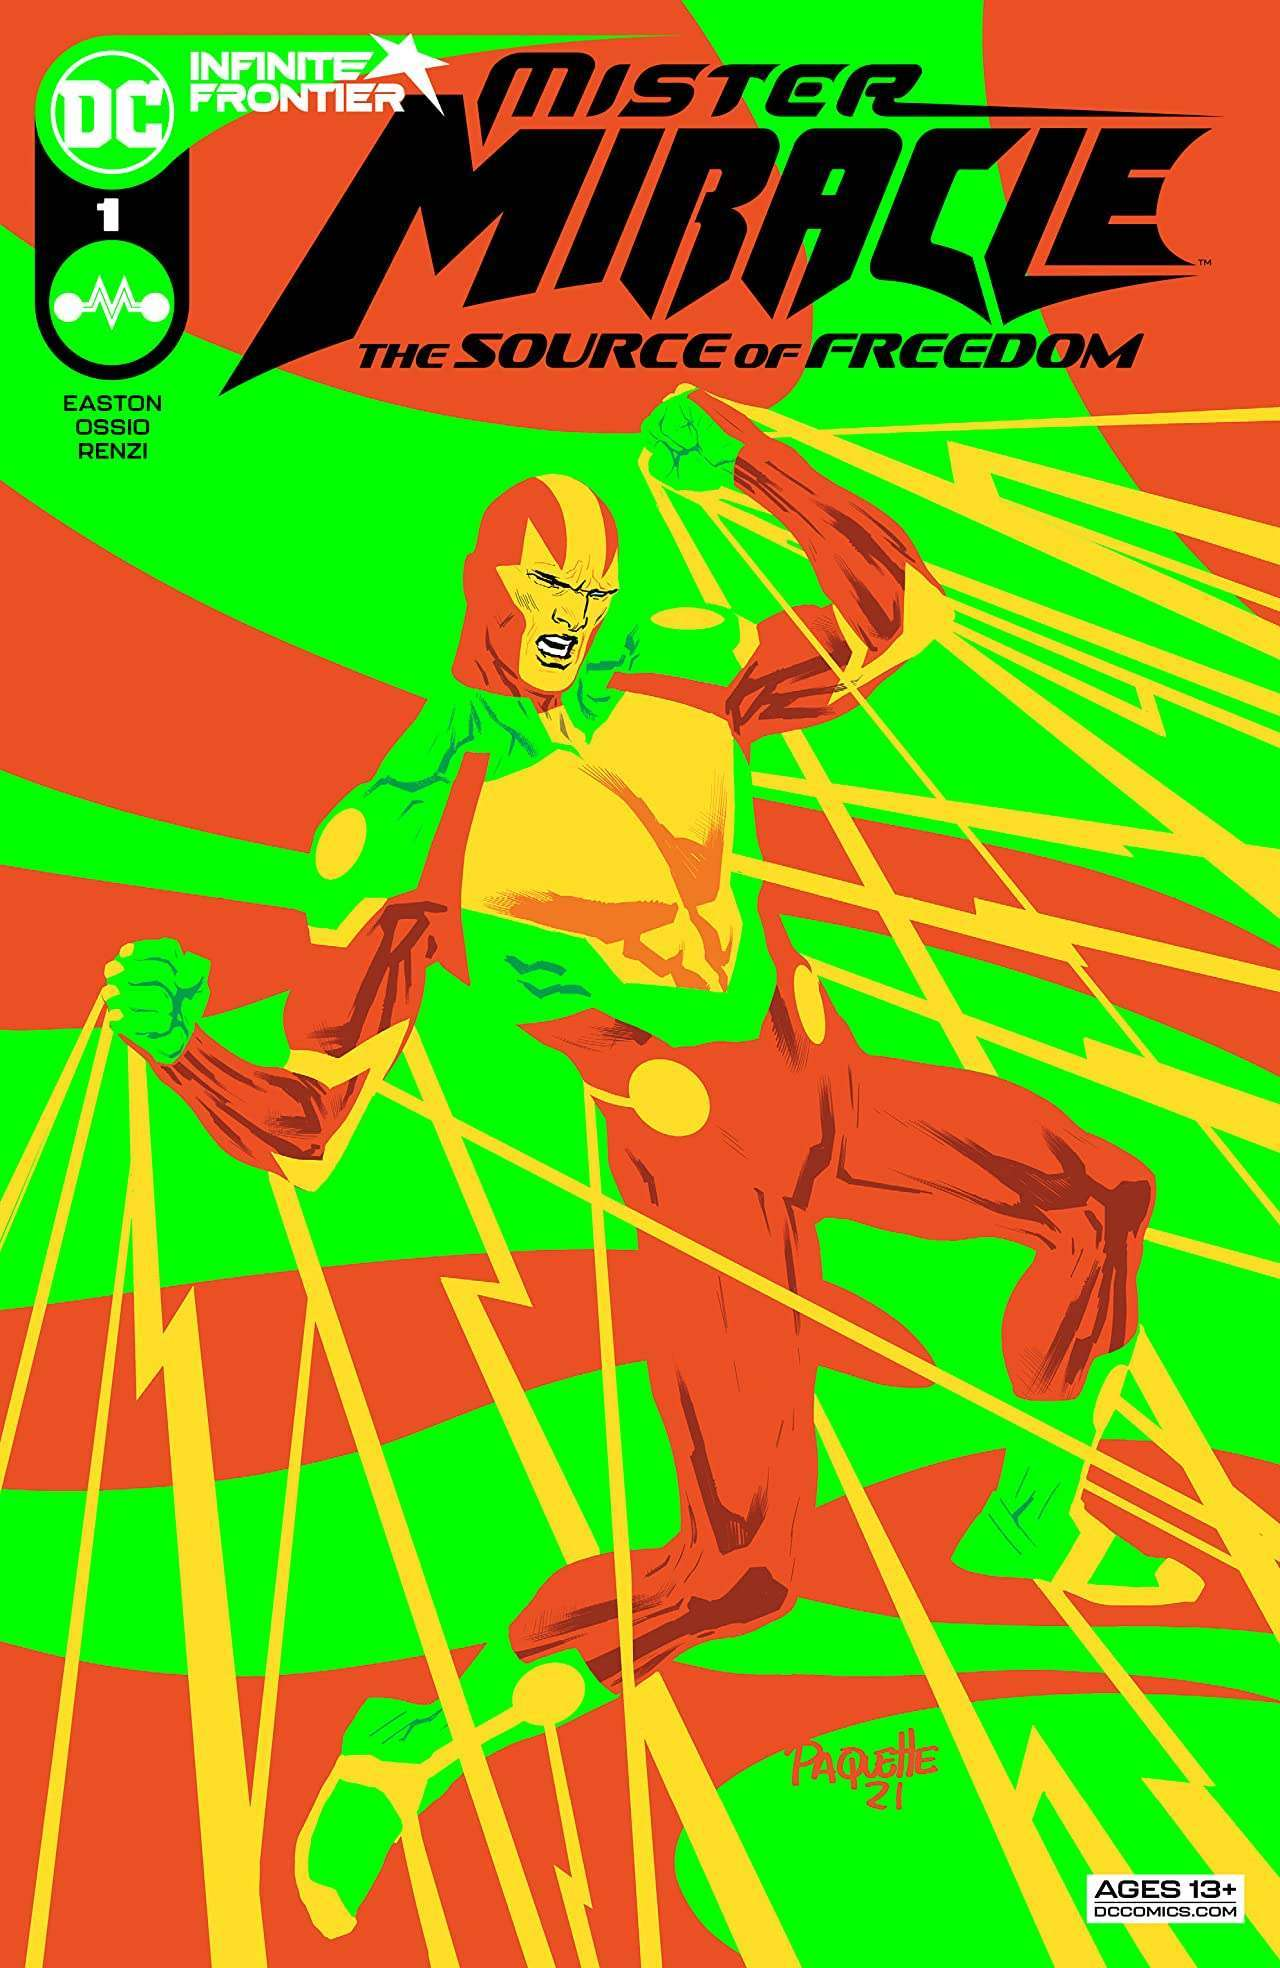 Mister Miracle The Source of Freedom #1